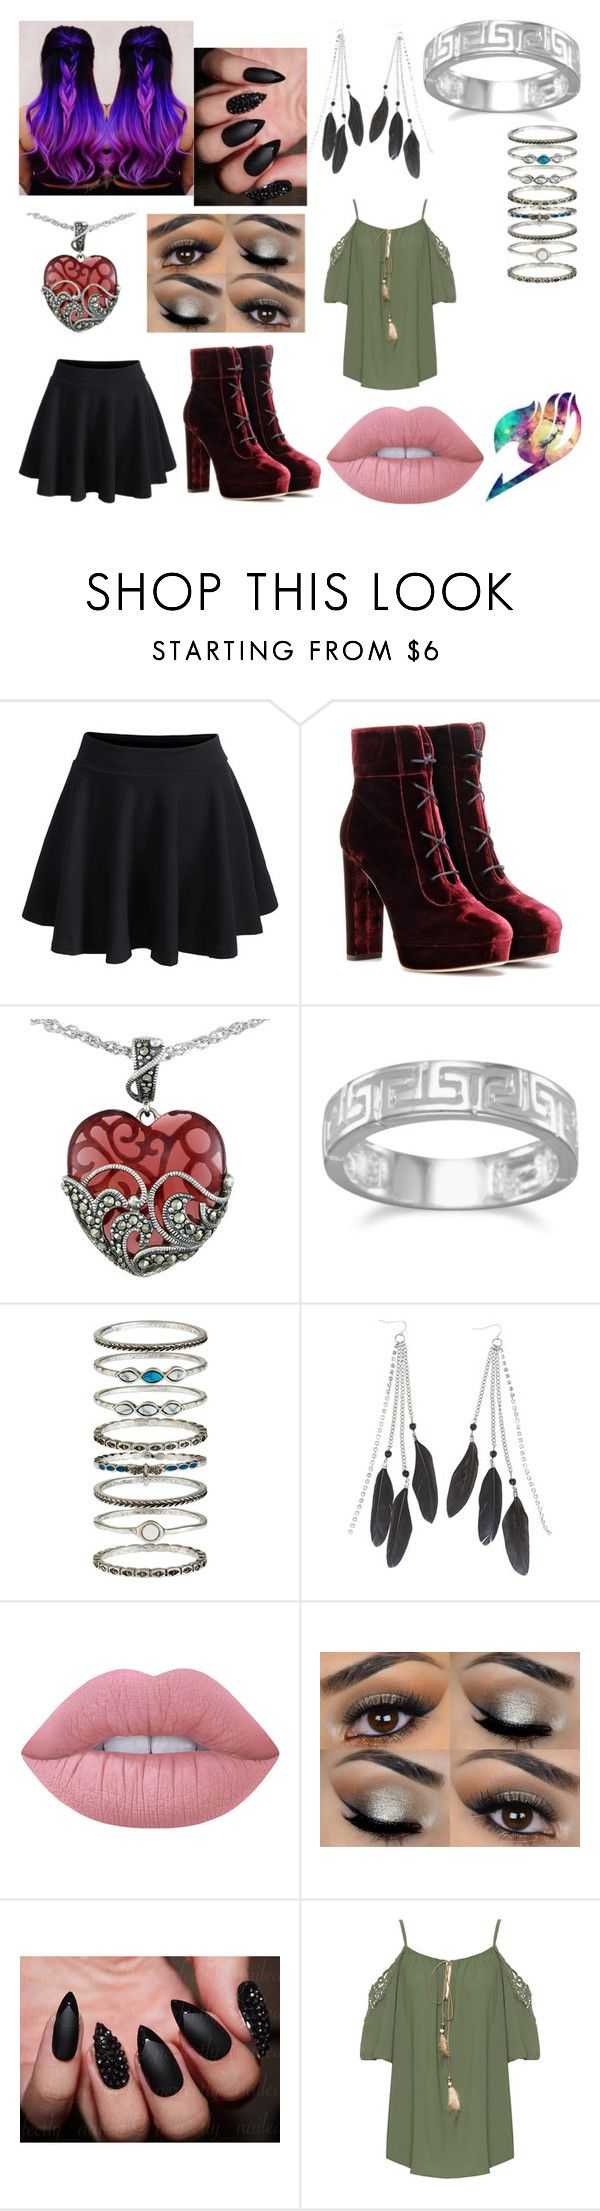 """FairyTail Character"" by kenzie-motionless on Polyvore featuring Jimmy Choo, Lord & Taylor, BillyTheTree, Accessorize, Charlotte Russe, Lime Crime and WearAll"